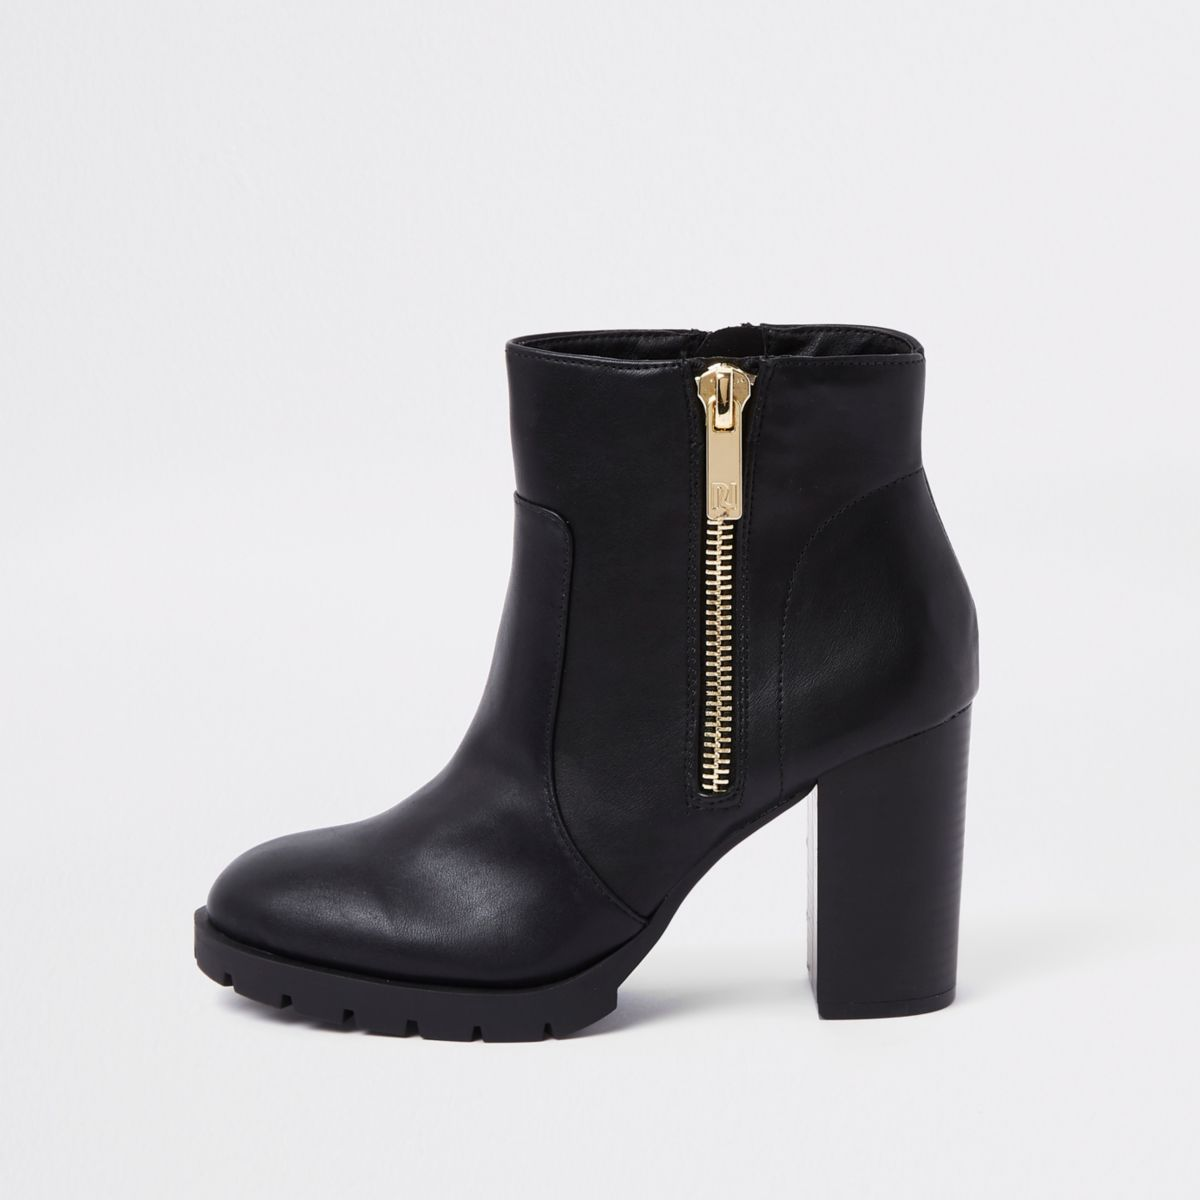 Black chunky side zip block heel ankle boots